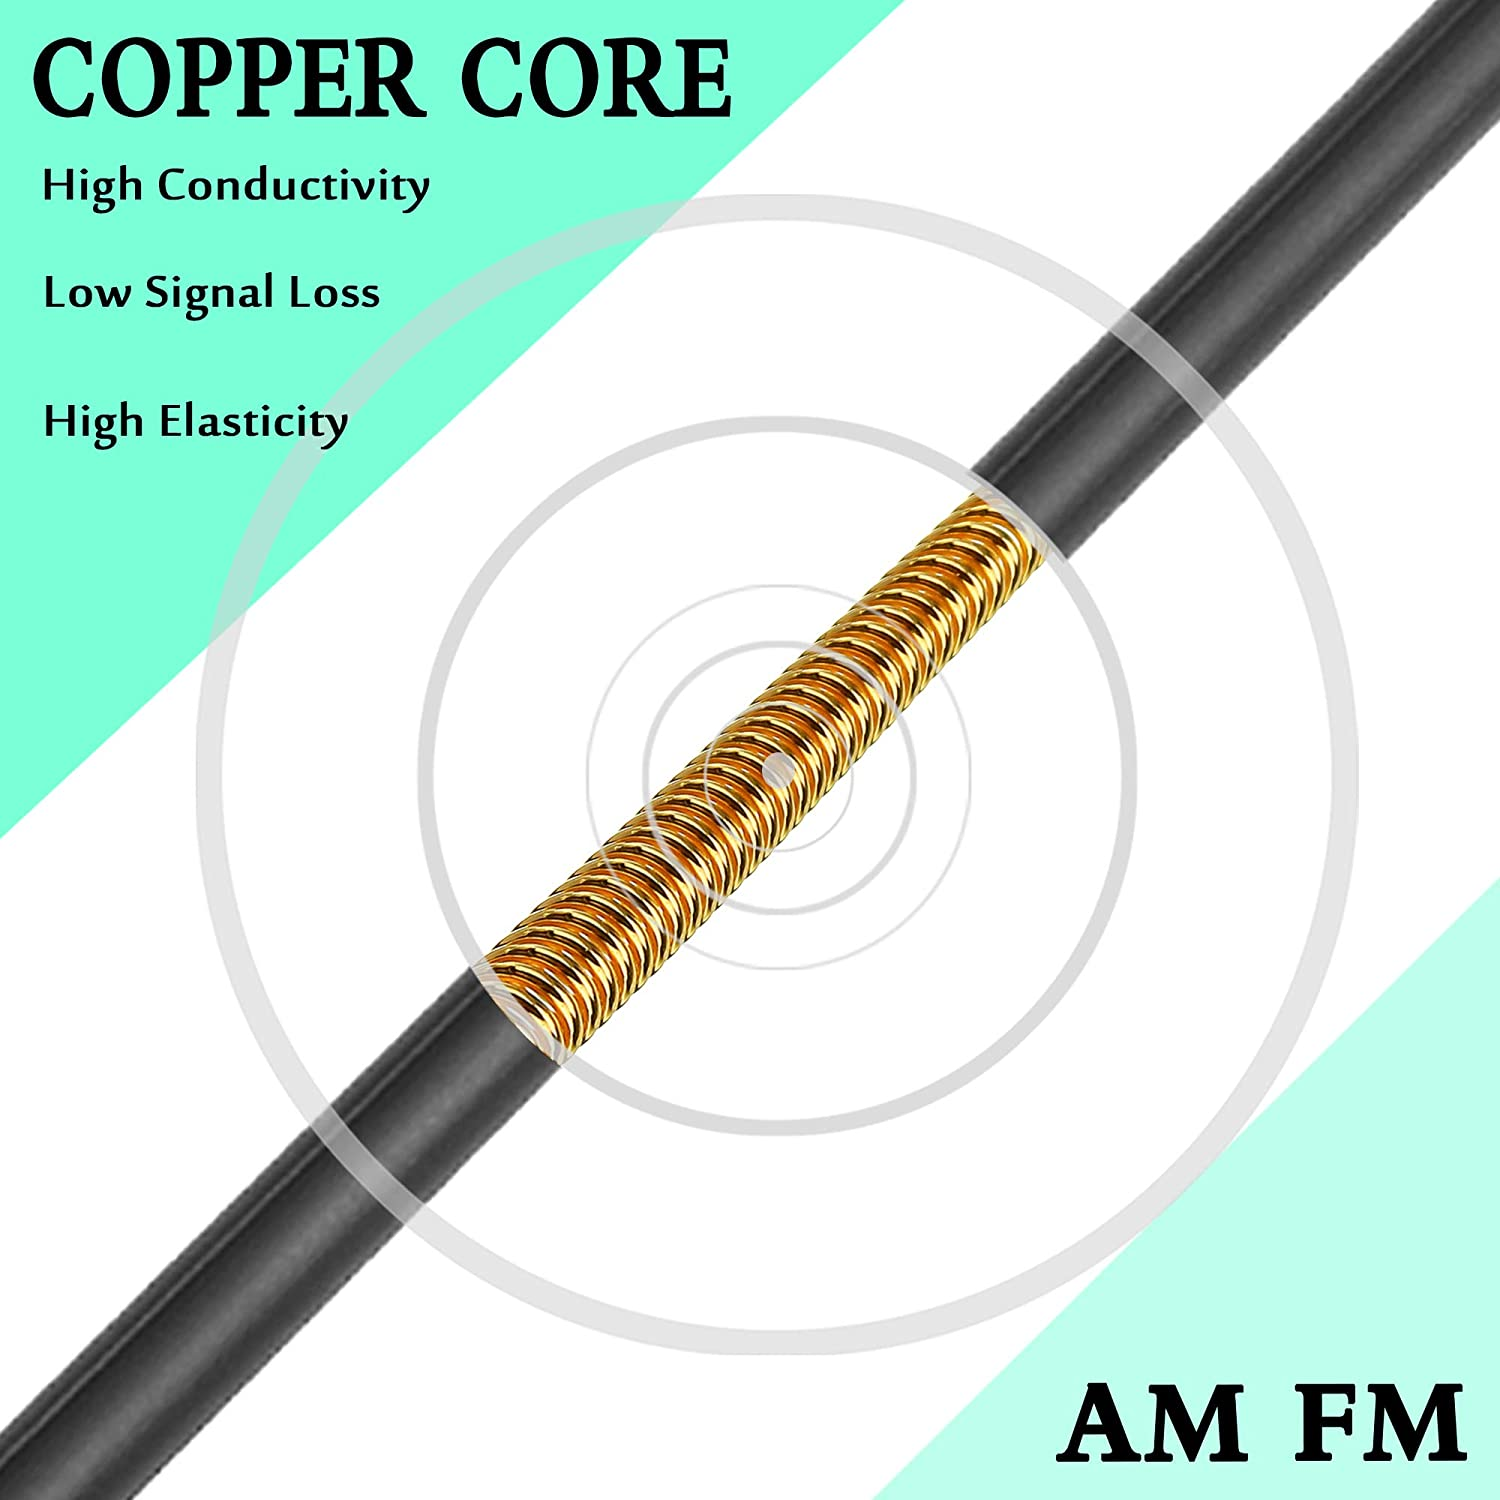 KSaAuto HOOH 9 Cool Vertical Lines Antenna for Harley Davidson 1998-2020 ┃ 13 Inch Car Wash Proof ┃ Unique Design to Improve Reception and Reduce Signal Loss Copper Core for AM FM